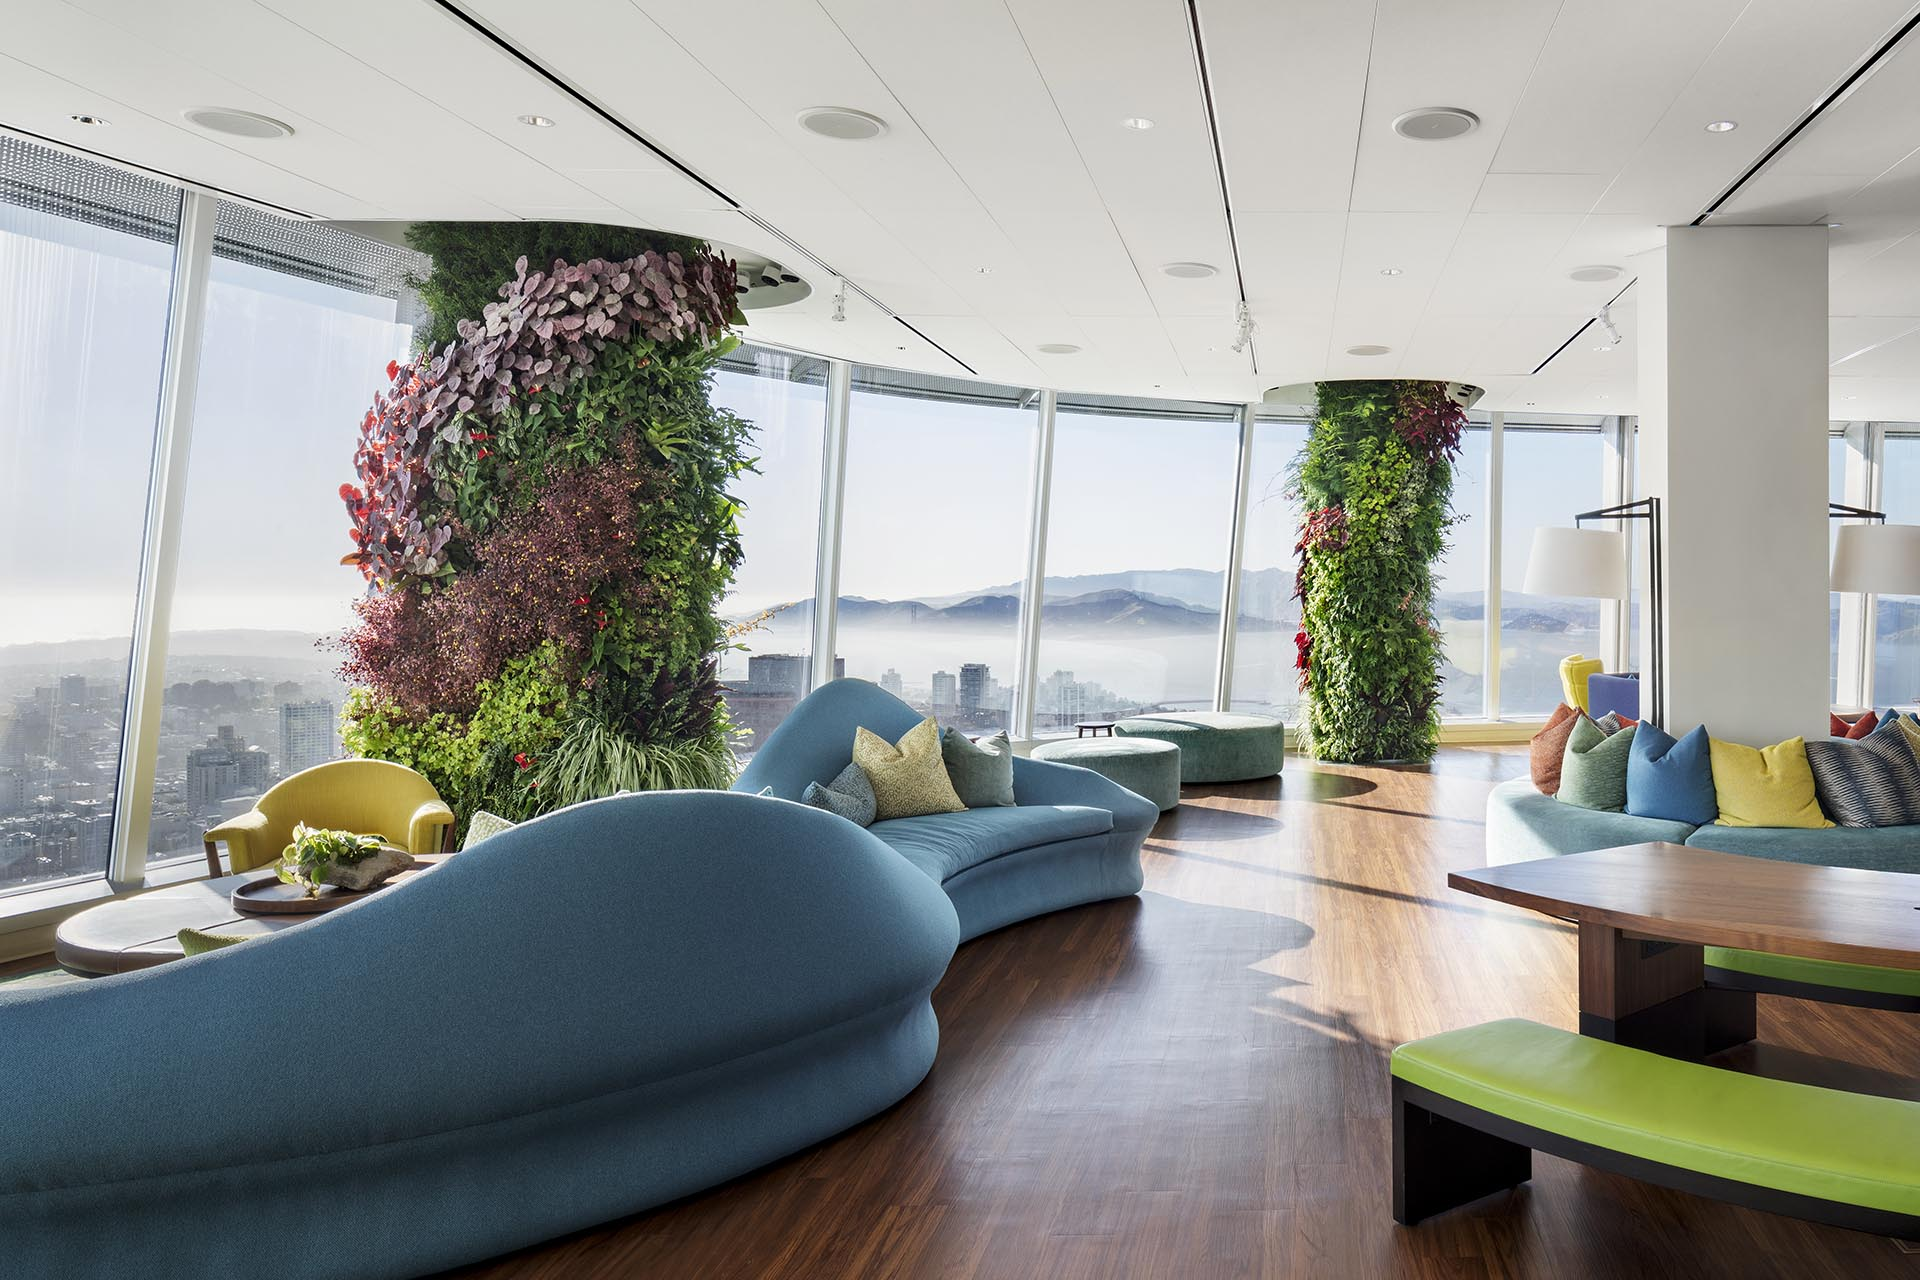 24 columns that surround a circular office floor have been remodeled to create eye-catching vertical gardens.